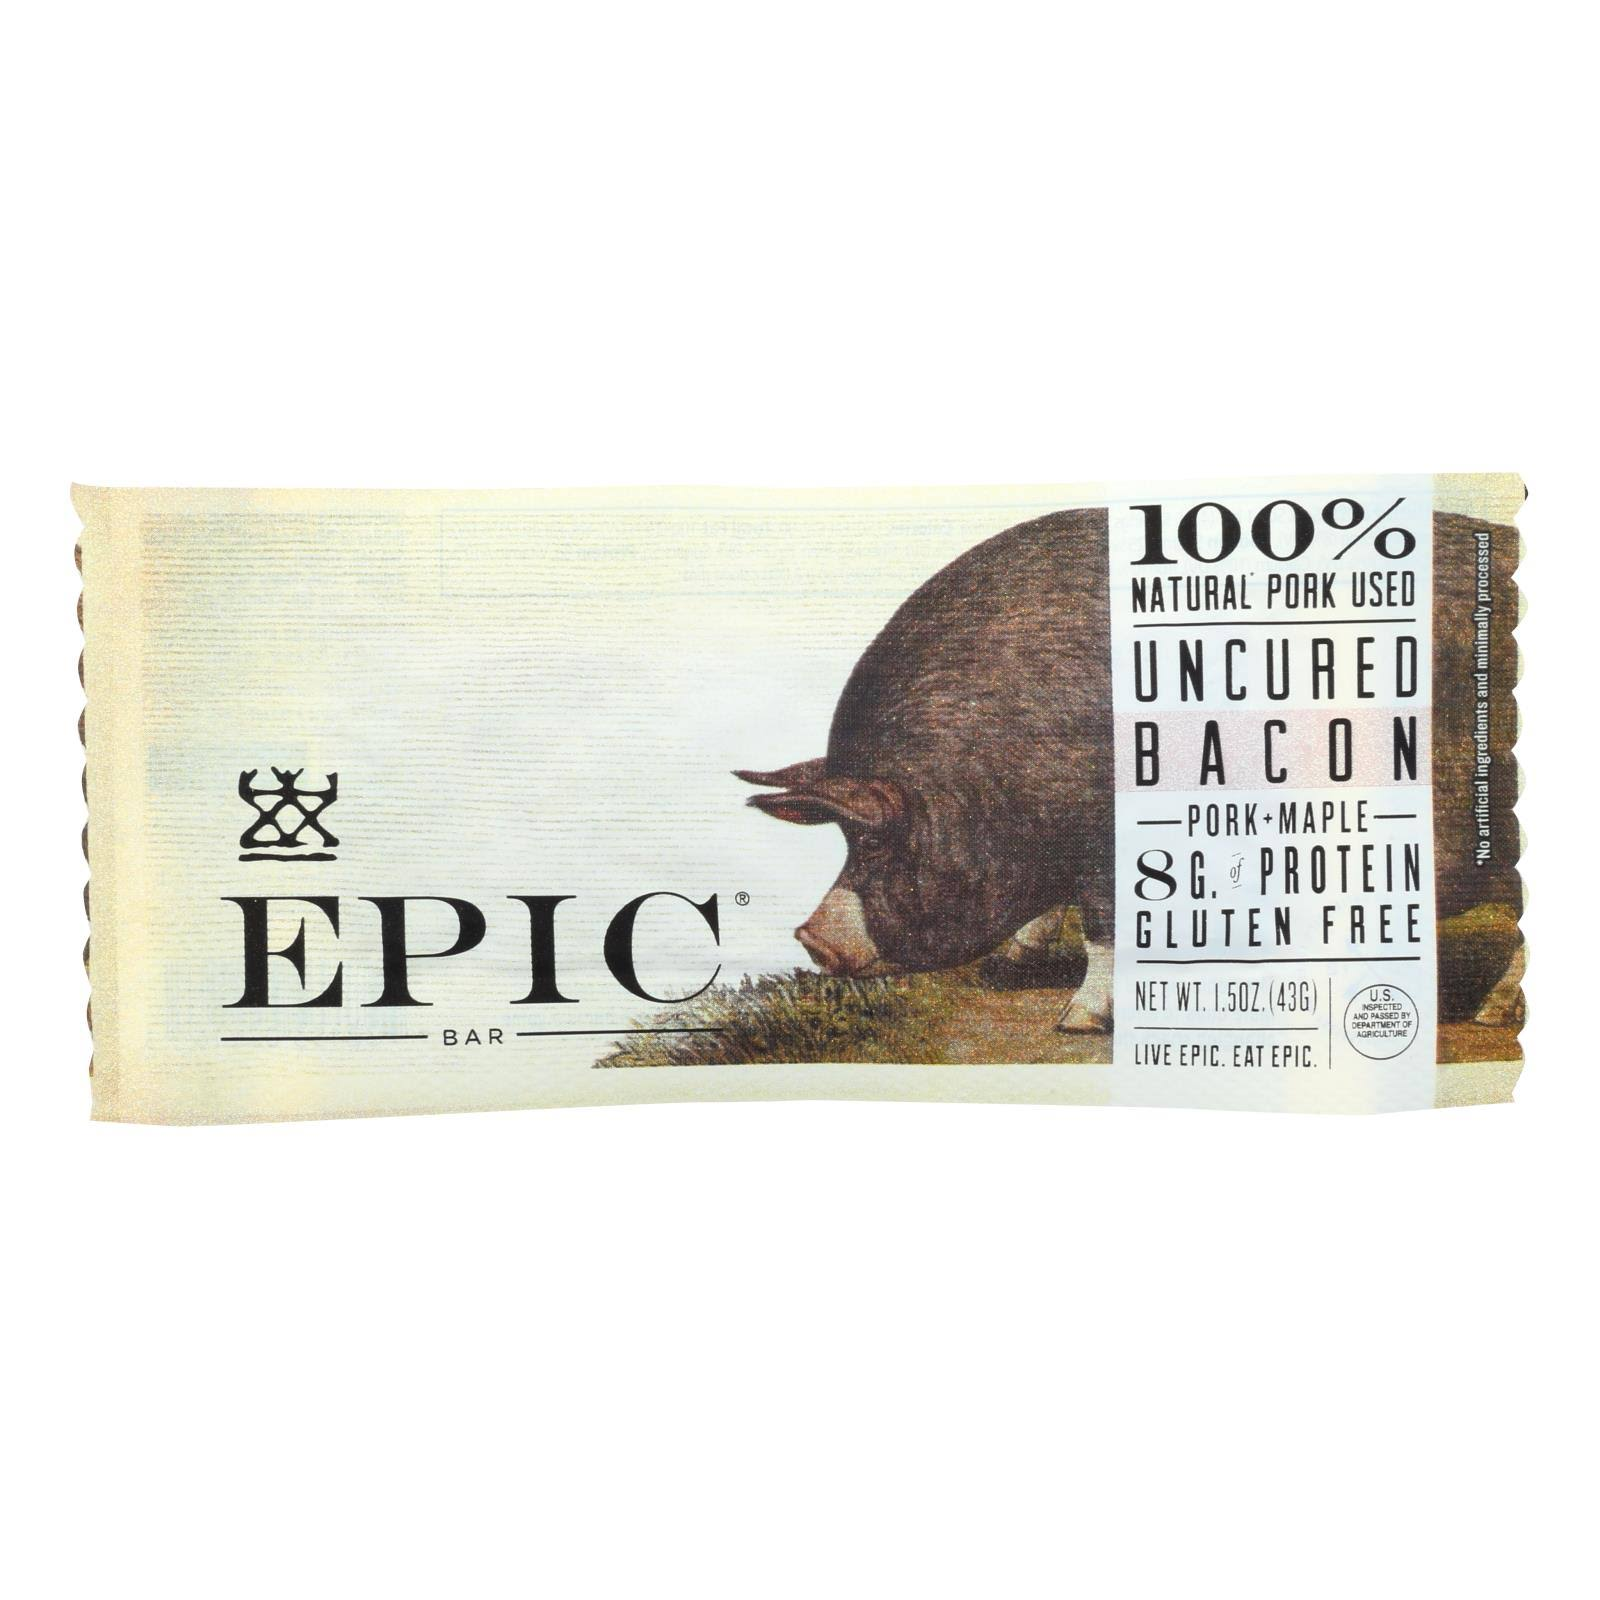 Epic Bacon Maple Protein Bar - 1.5 oz